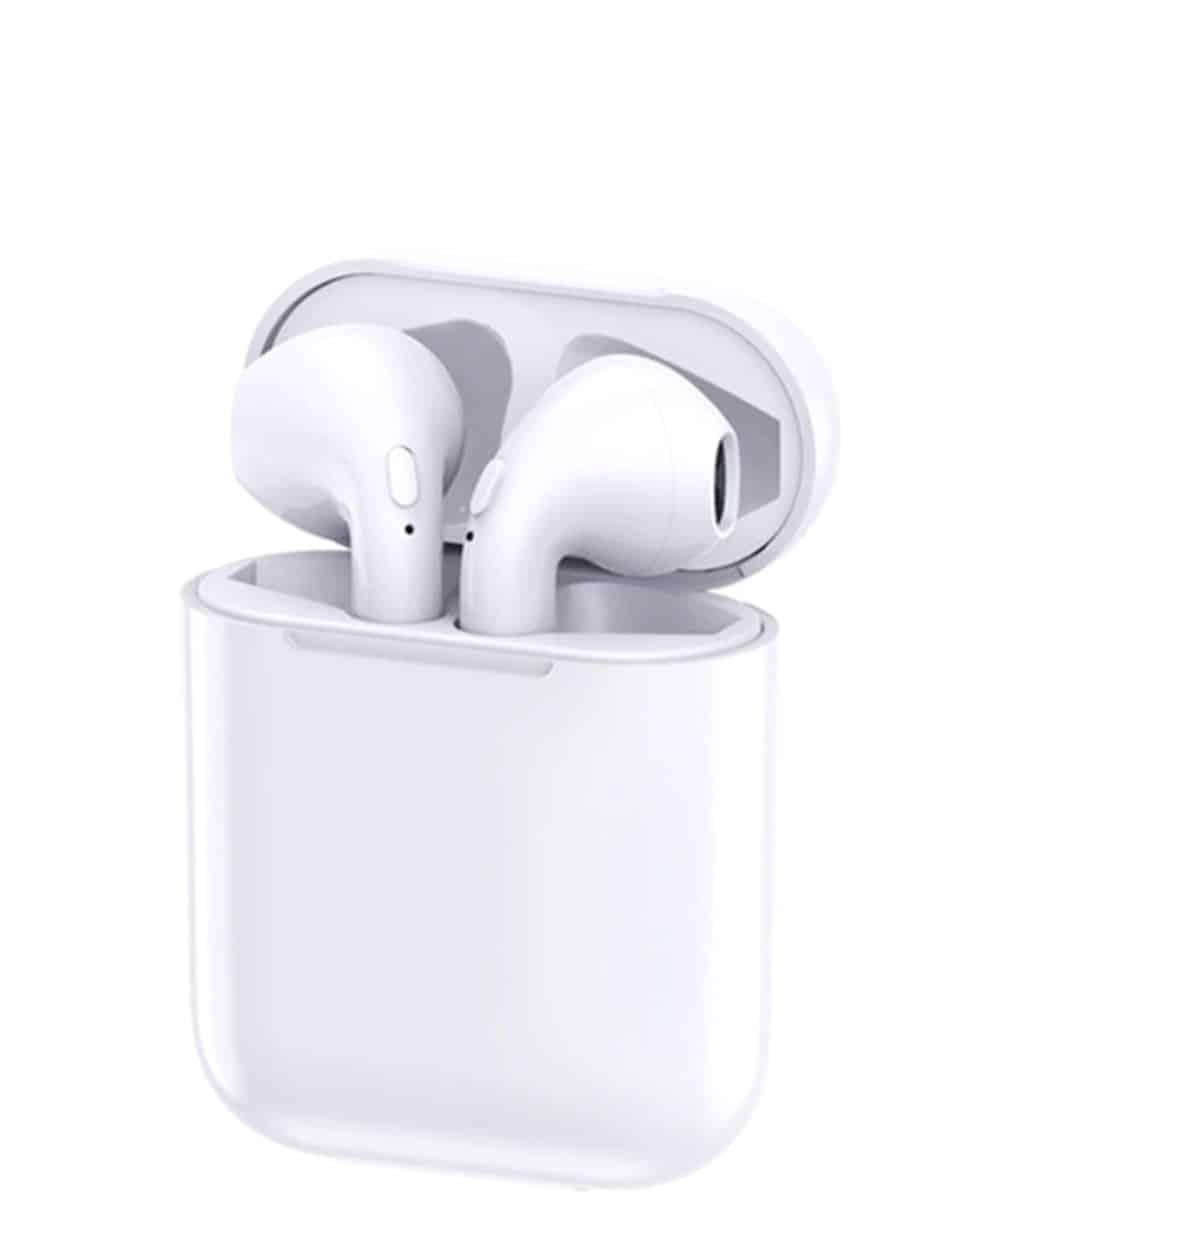 fake air pod review knock off Airpod vs the real deal, best true wireless ear buds, genuine, authentic, cheap, lookalikes, imitations, Apple Airpods, Airpod rivals, Airpod alternatives, best selling, Cheap doesn't necessarily means bad, cheap and good, knock off, Airpod charging case